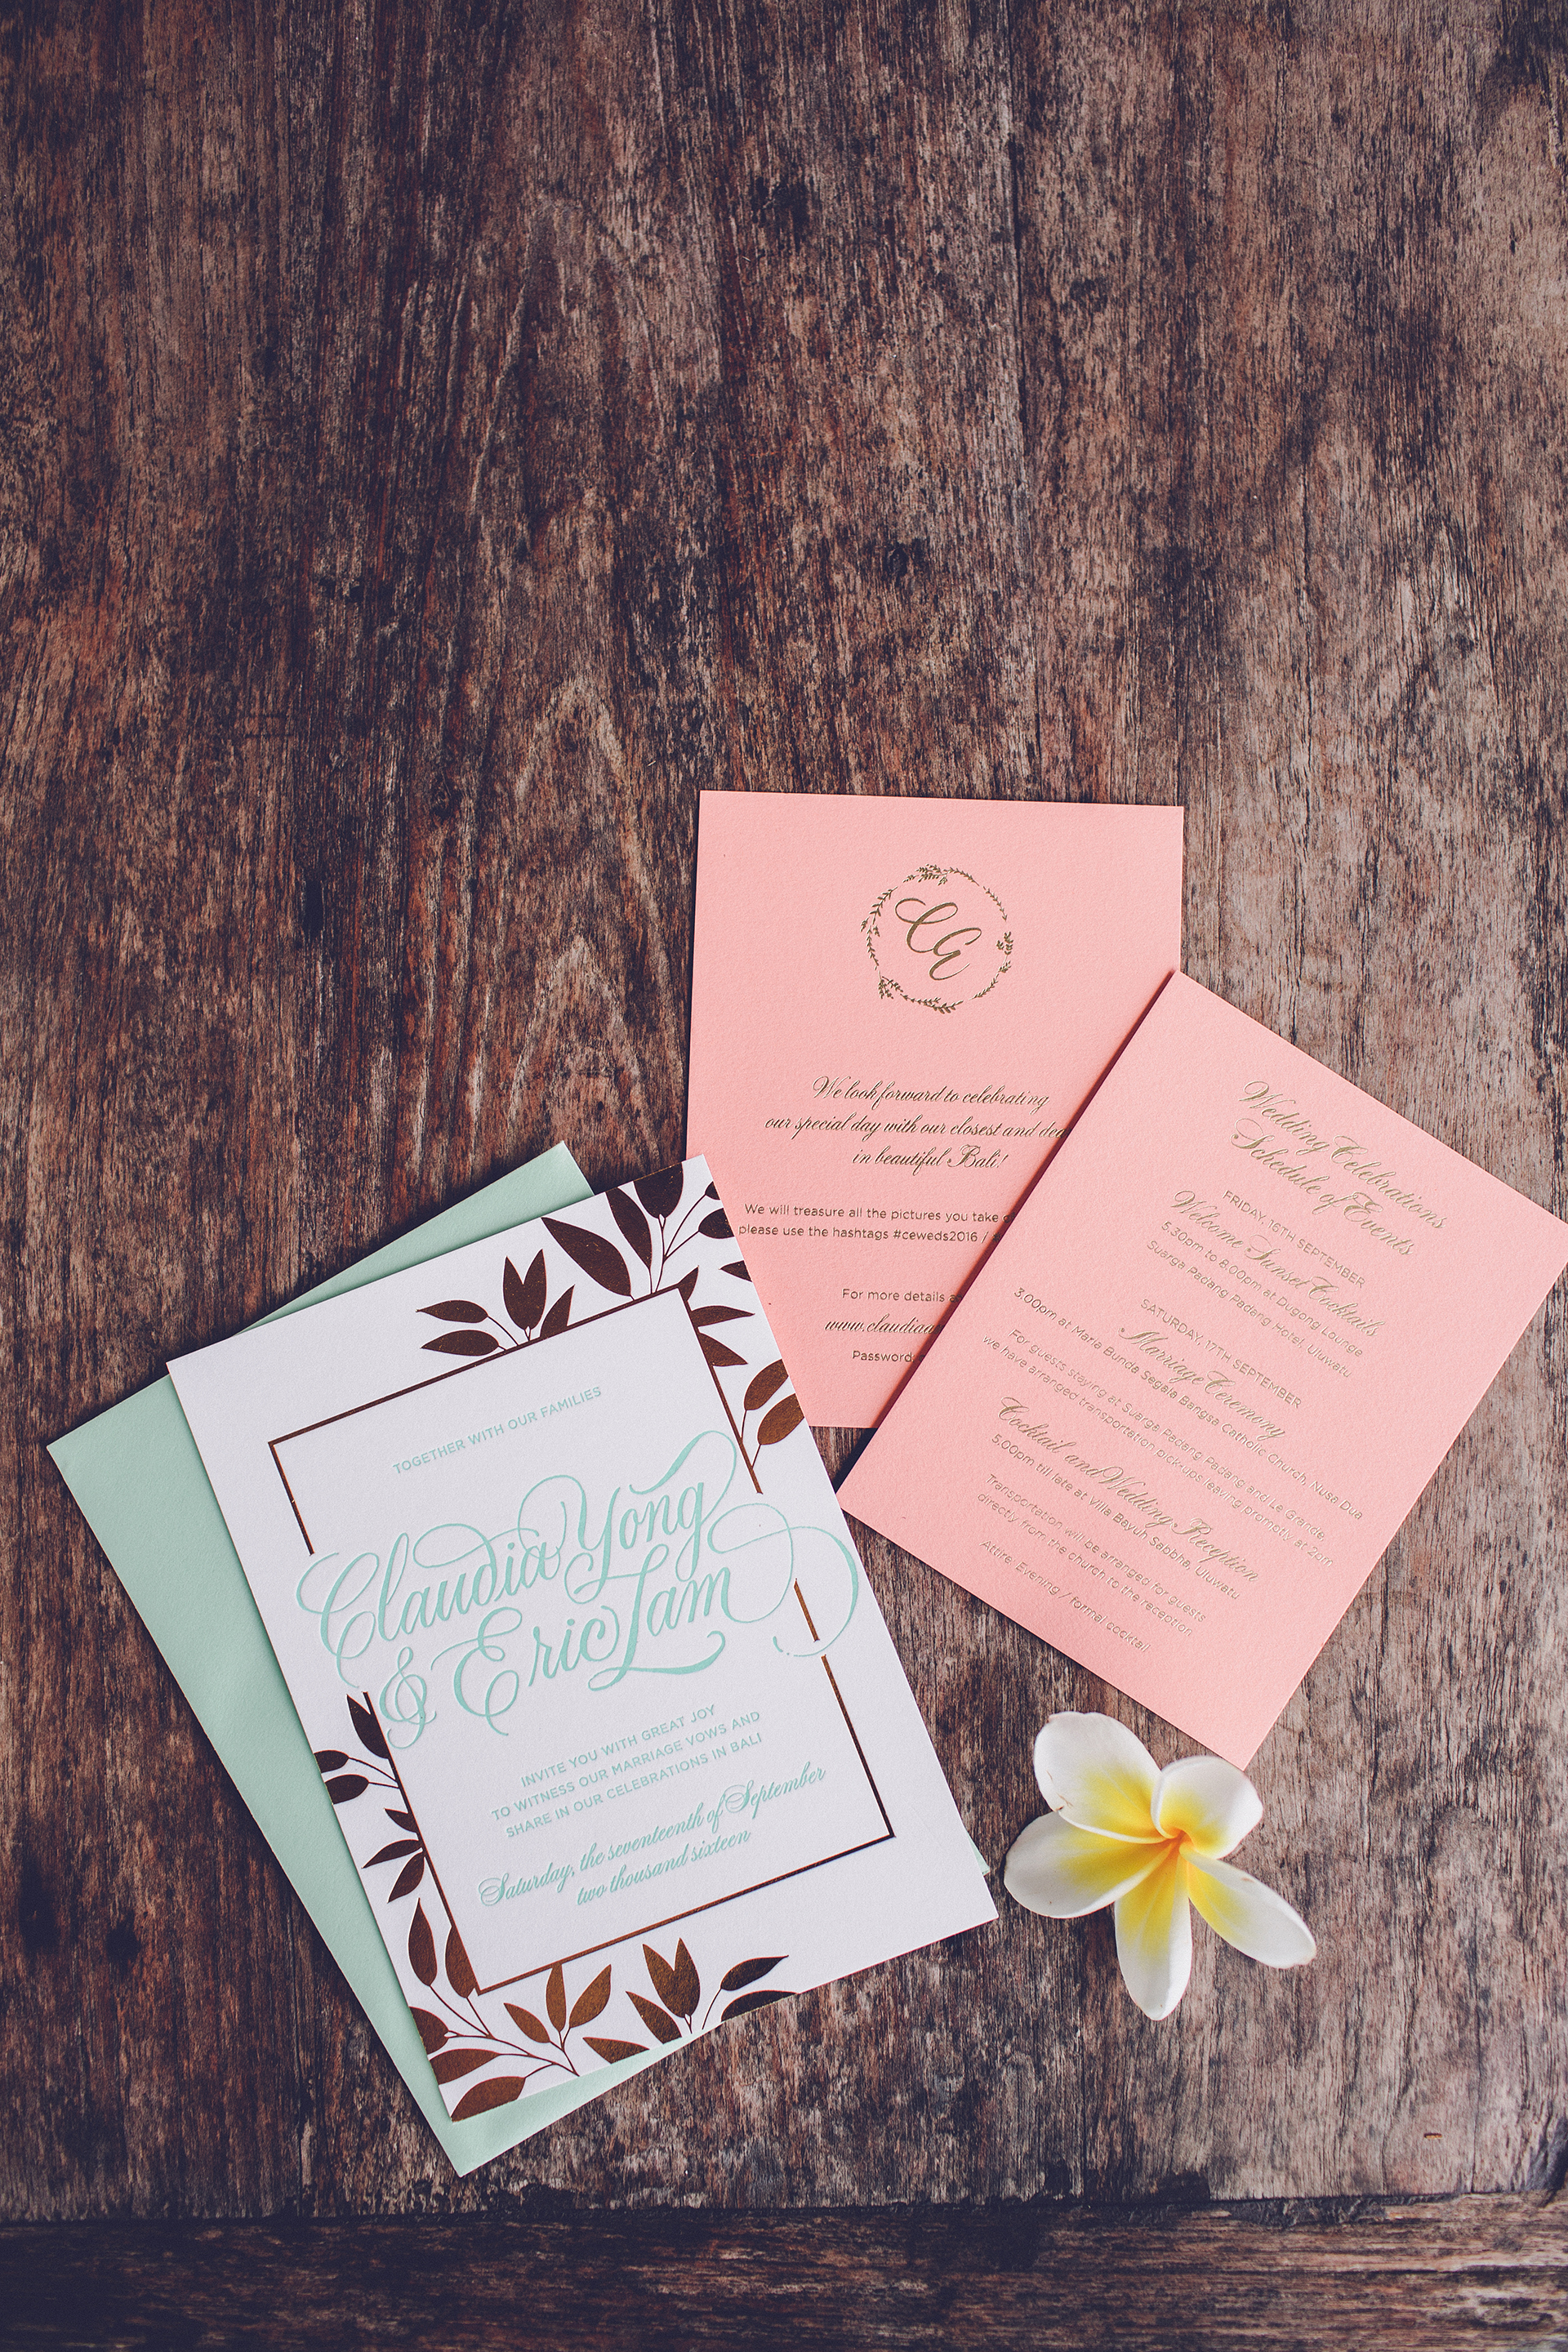 Wedding invitation suite with gold foil and letterpress printing | www.chavelli.com